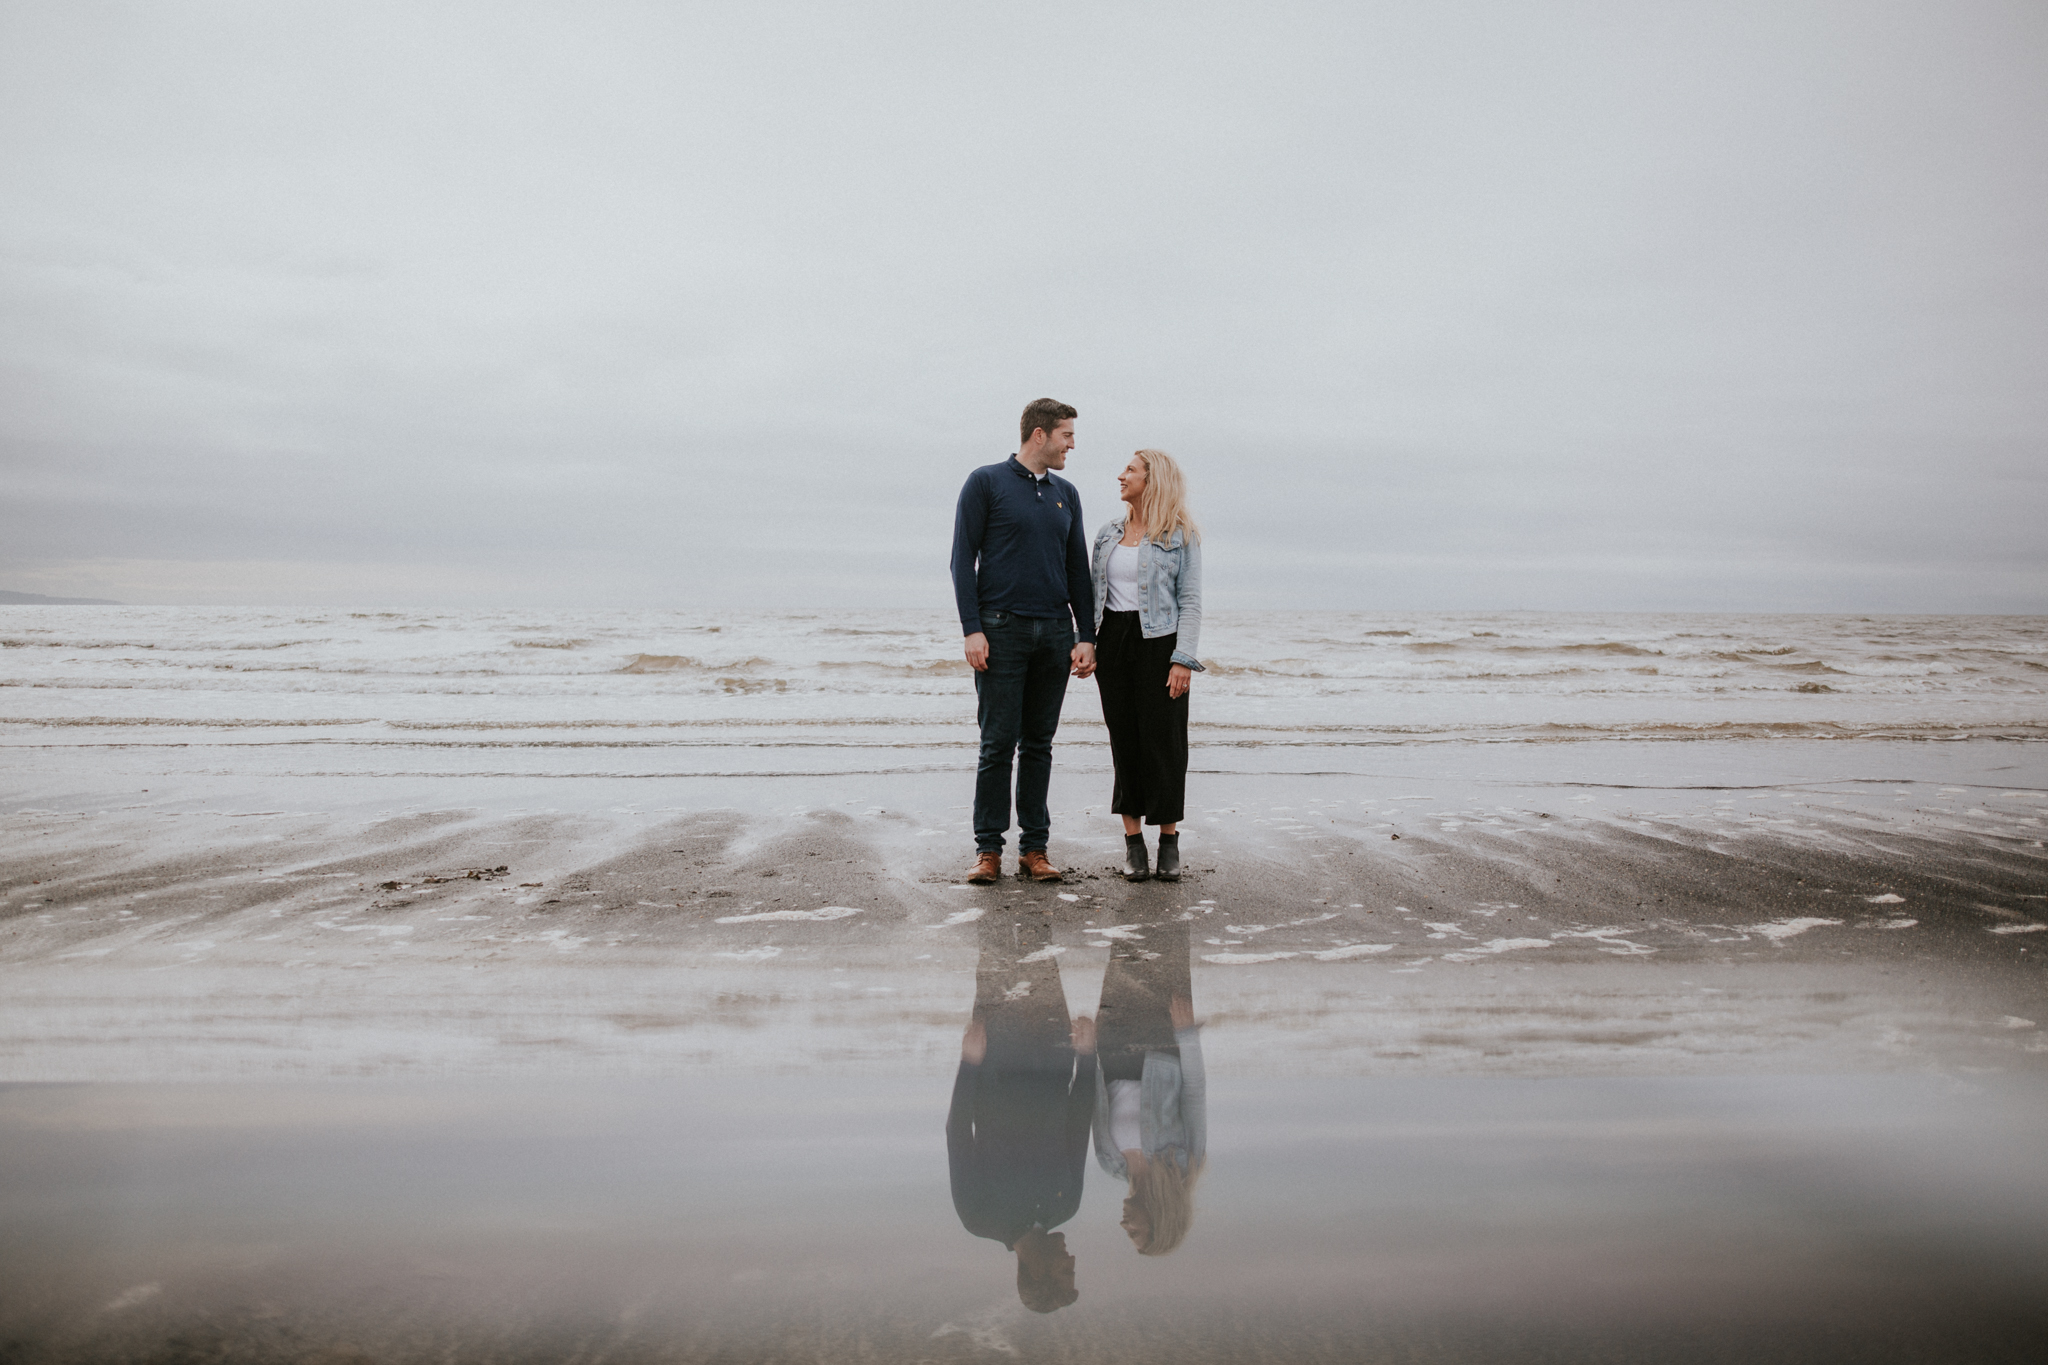 The couple's reflection on the sea in Troon, Ayrshire wedding and engagement photographer